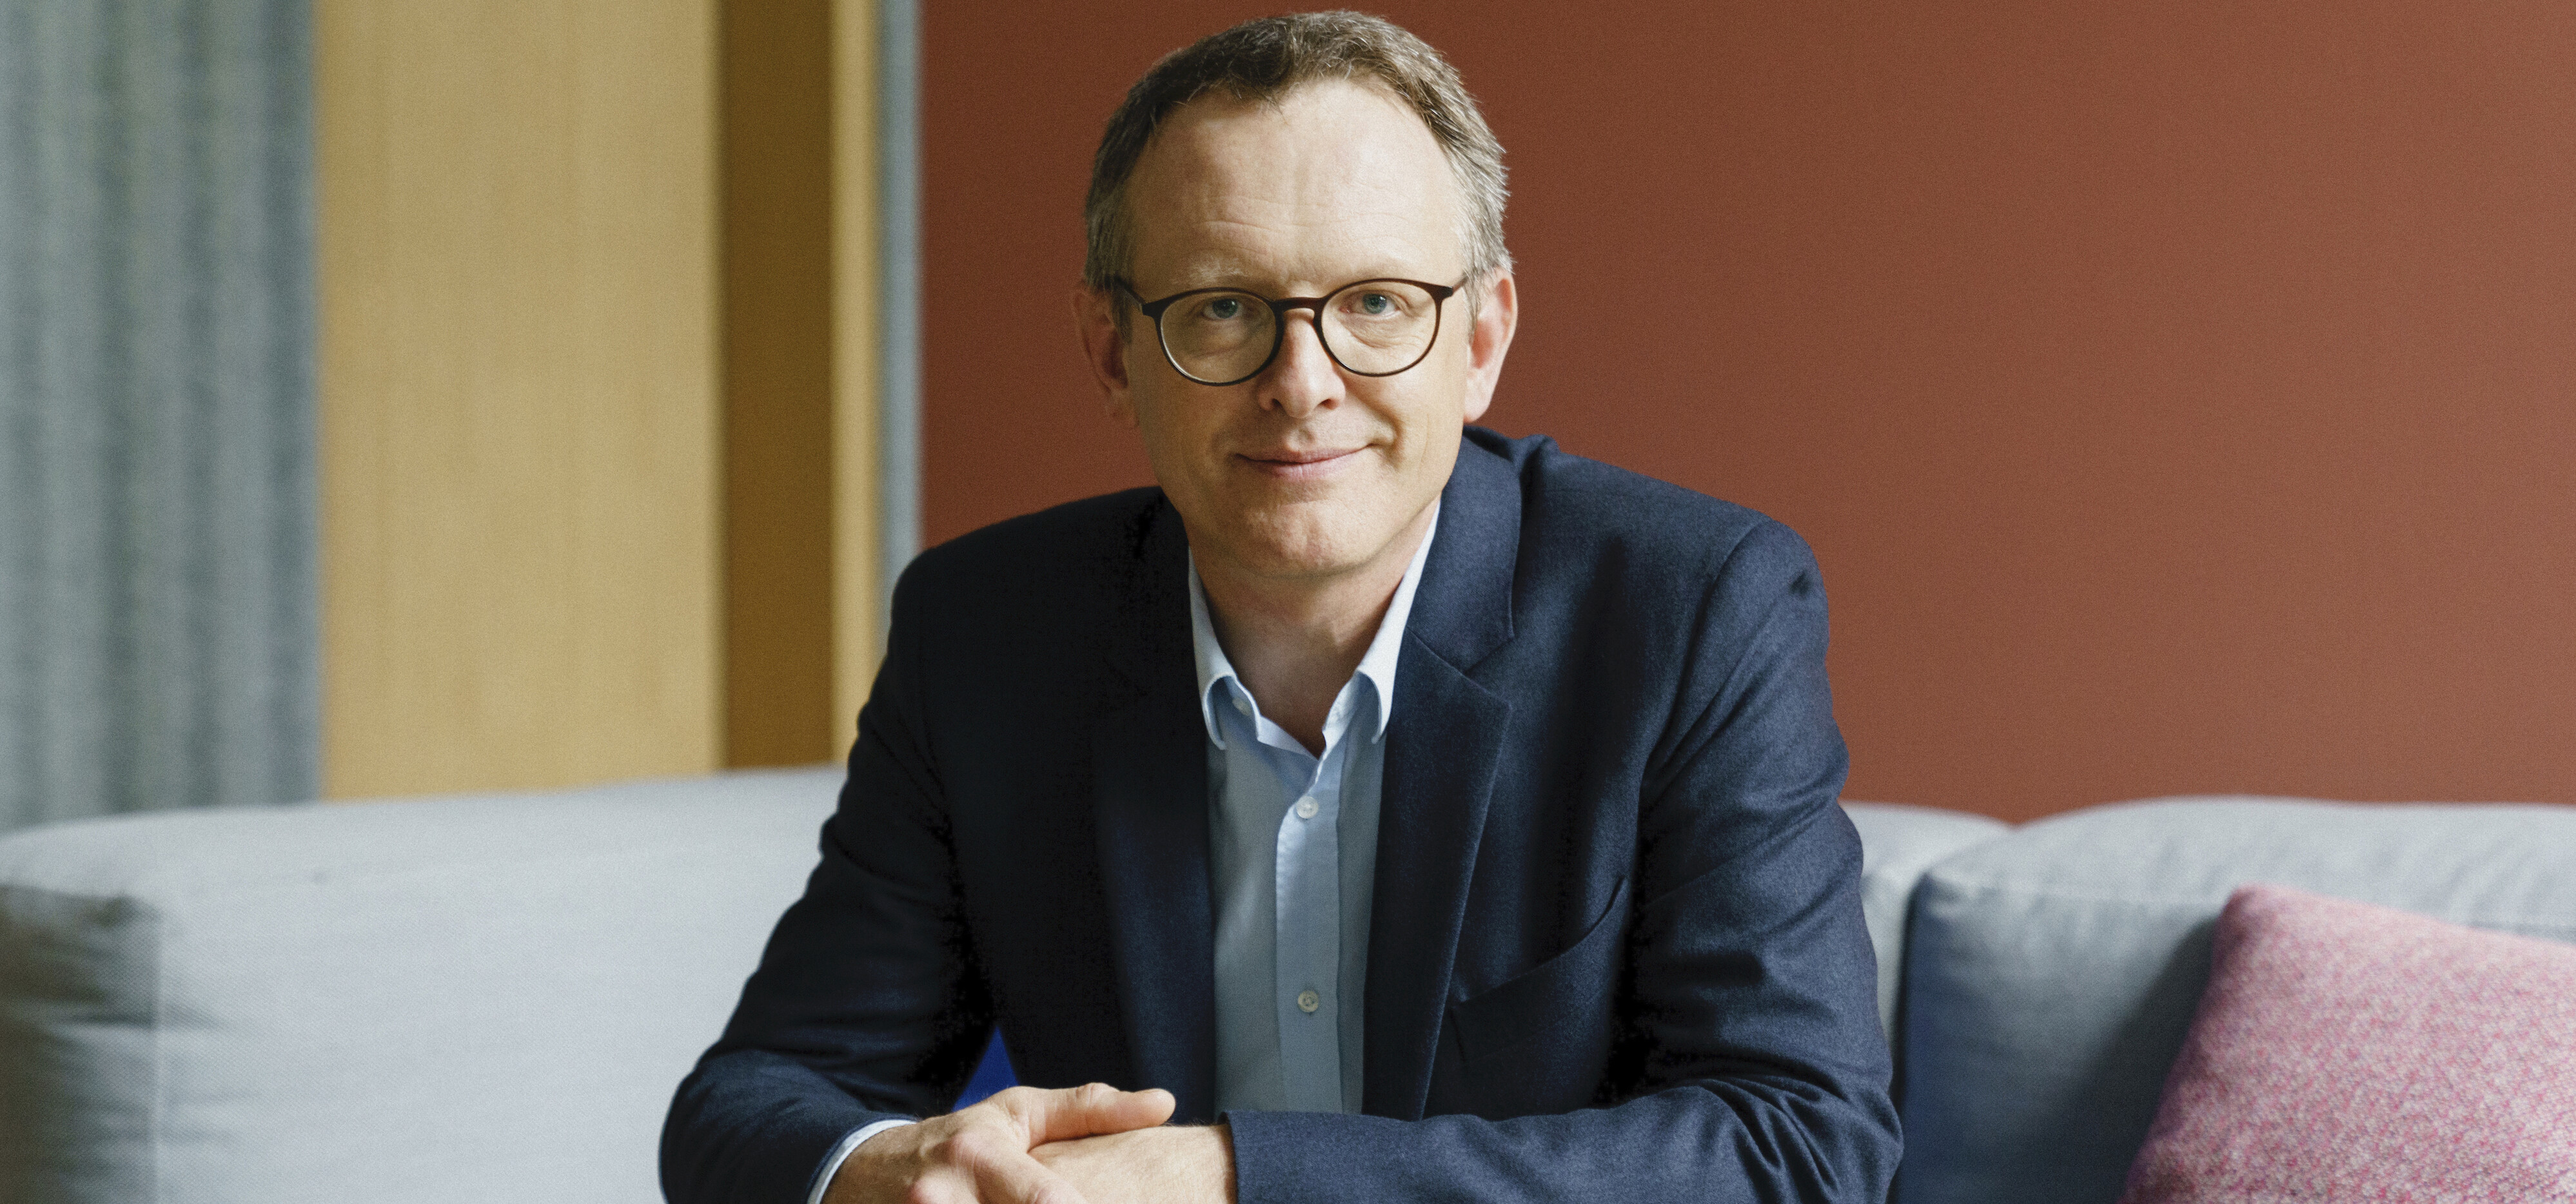 Jan Bohl, COO & CFO of Ableton